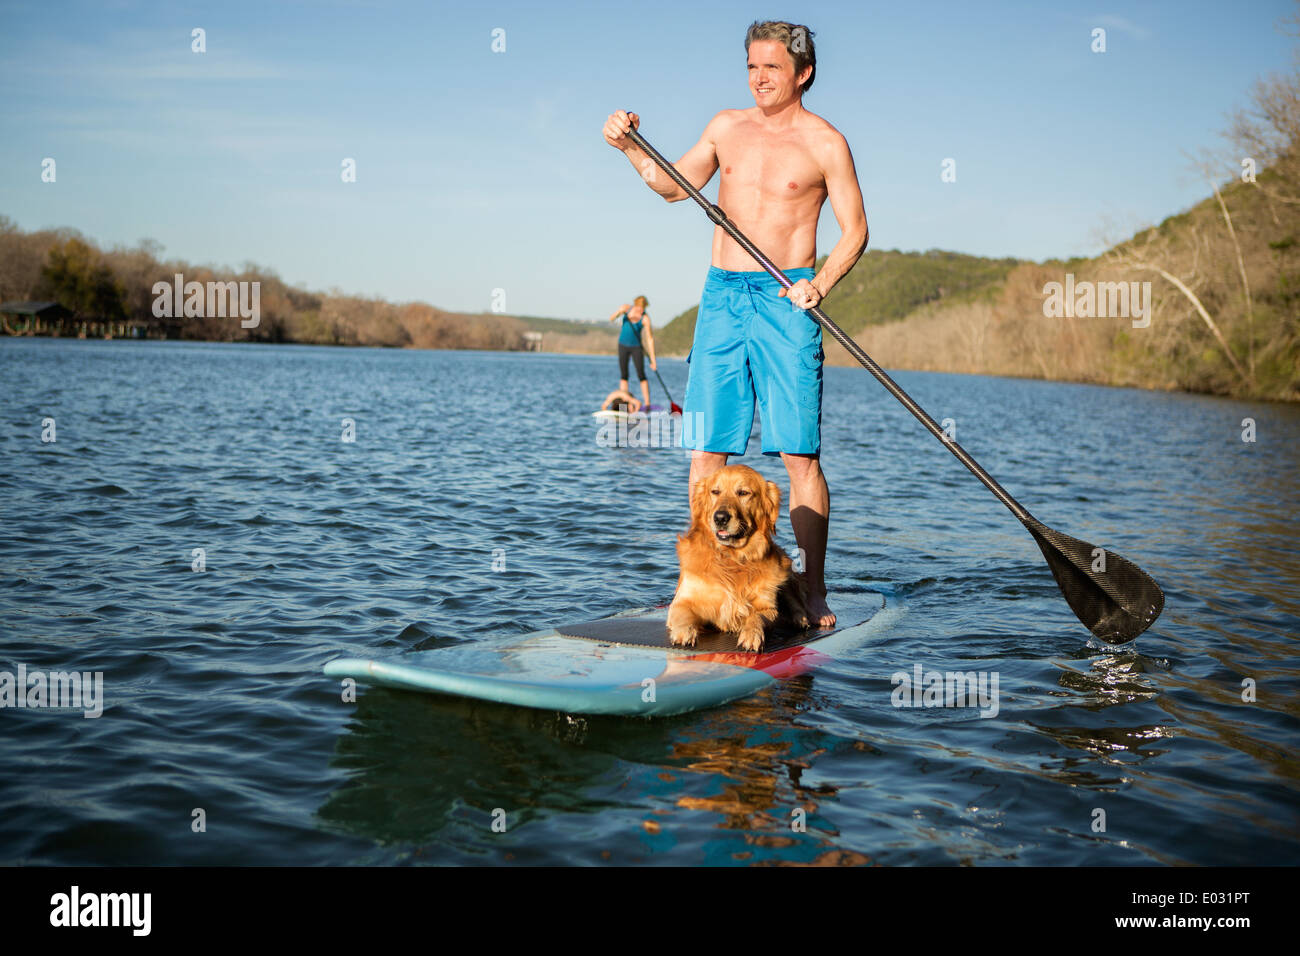 A man standing on a paddleboard with a dog. - Stock Image